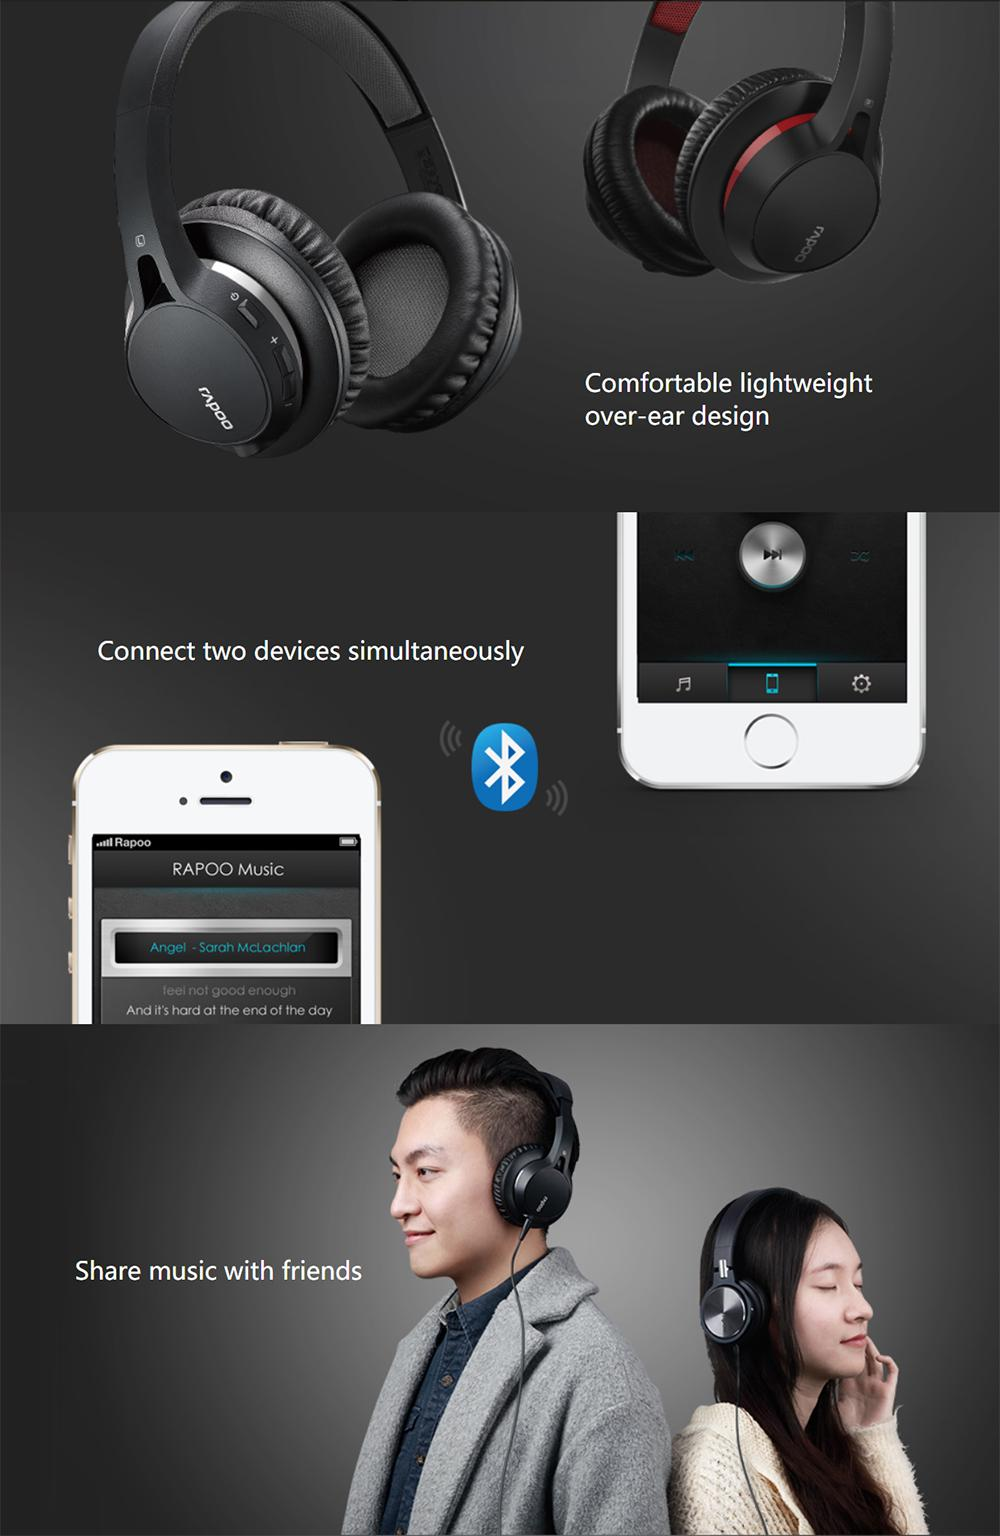 8f28c3e9bb3 Specifications of Rapoo S200 Bluetooth 4.1 Middle Level Over Ear Headset  Stereo Headphones